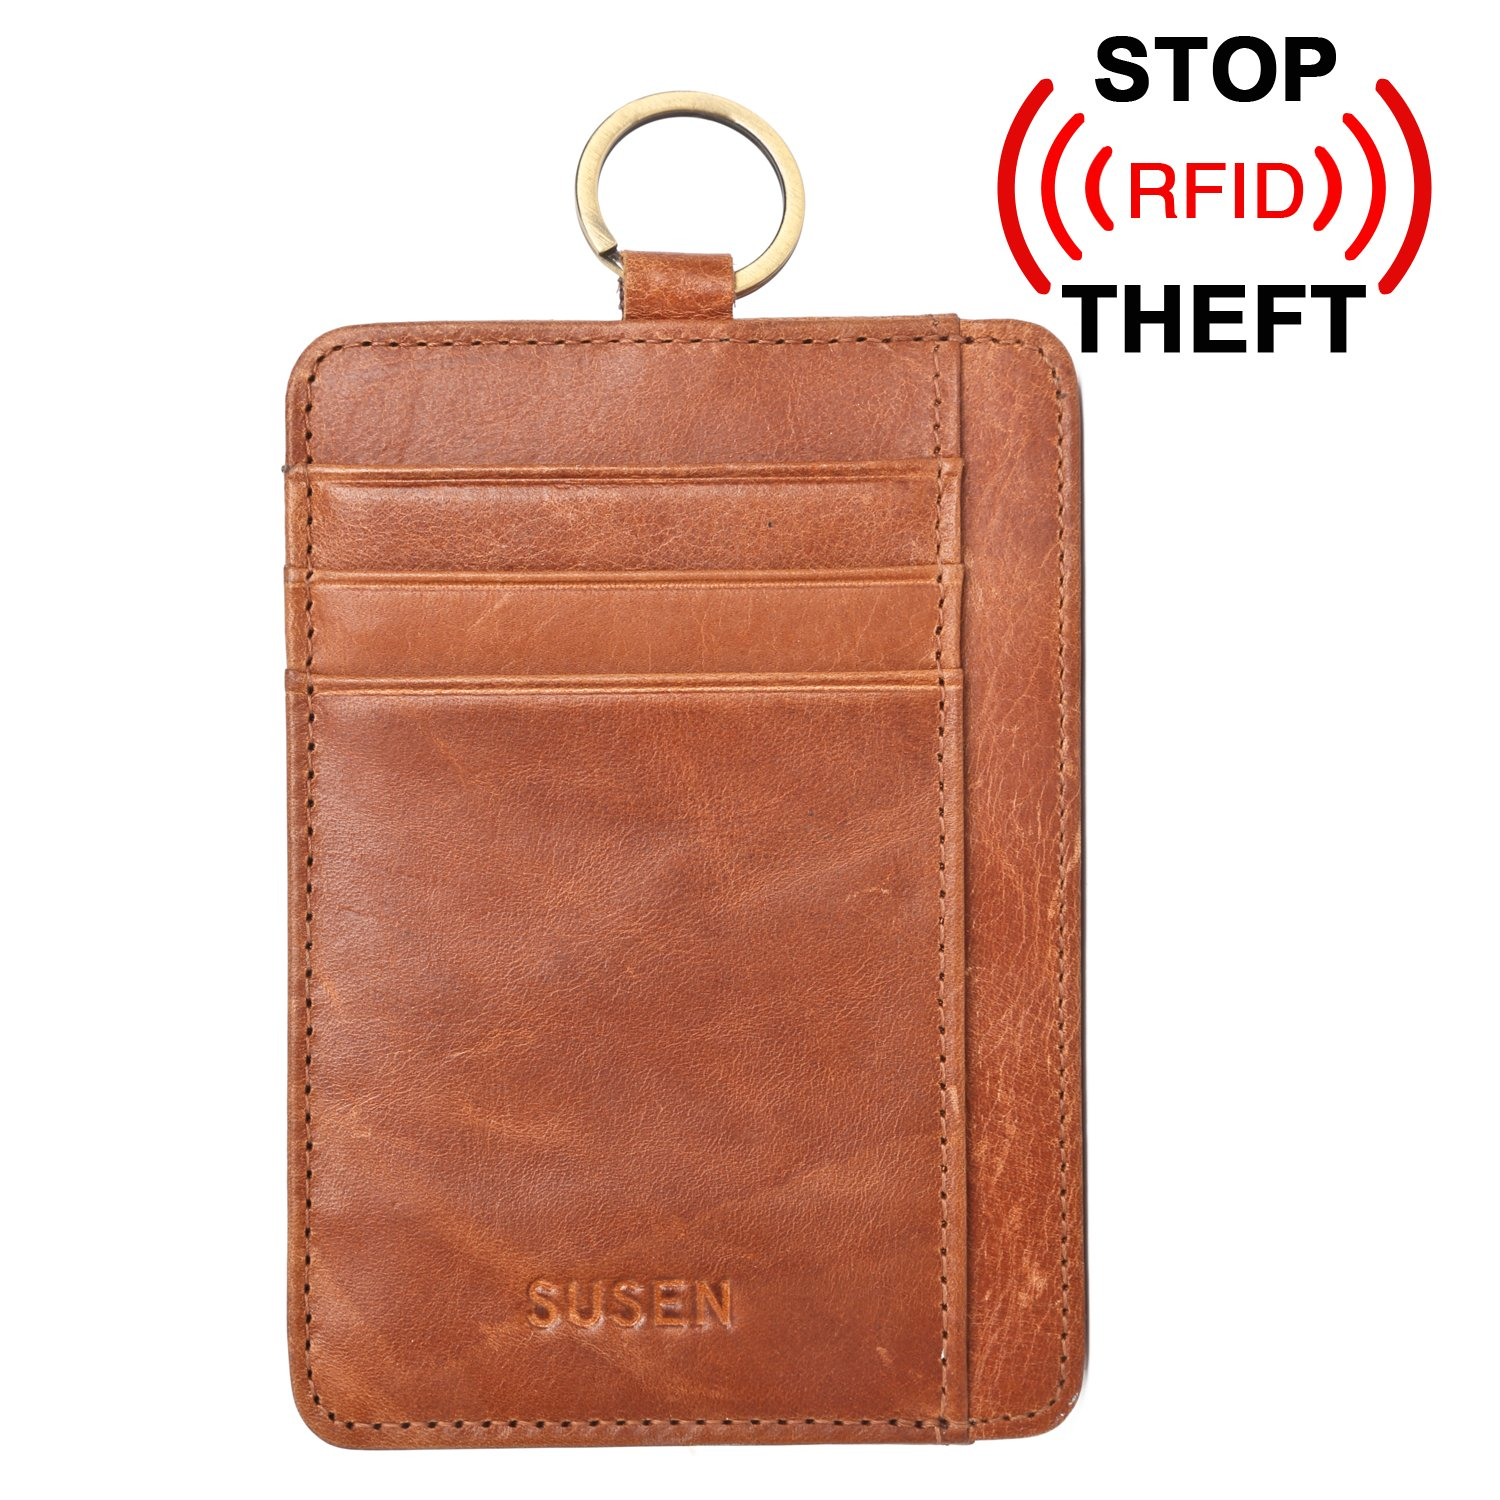 Mens RFID Blocking Wallet, SUSEN Slim Front Pocket Minimalist Wallet Card Holder Genuine Leather with Key Ring & ID Window, Best Gift for Father's Day (Coffee)